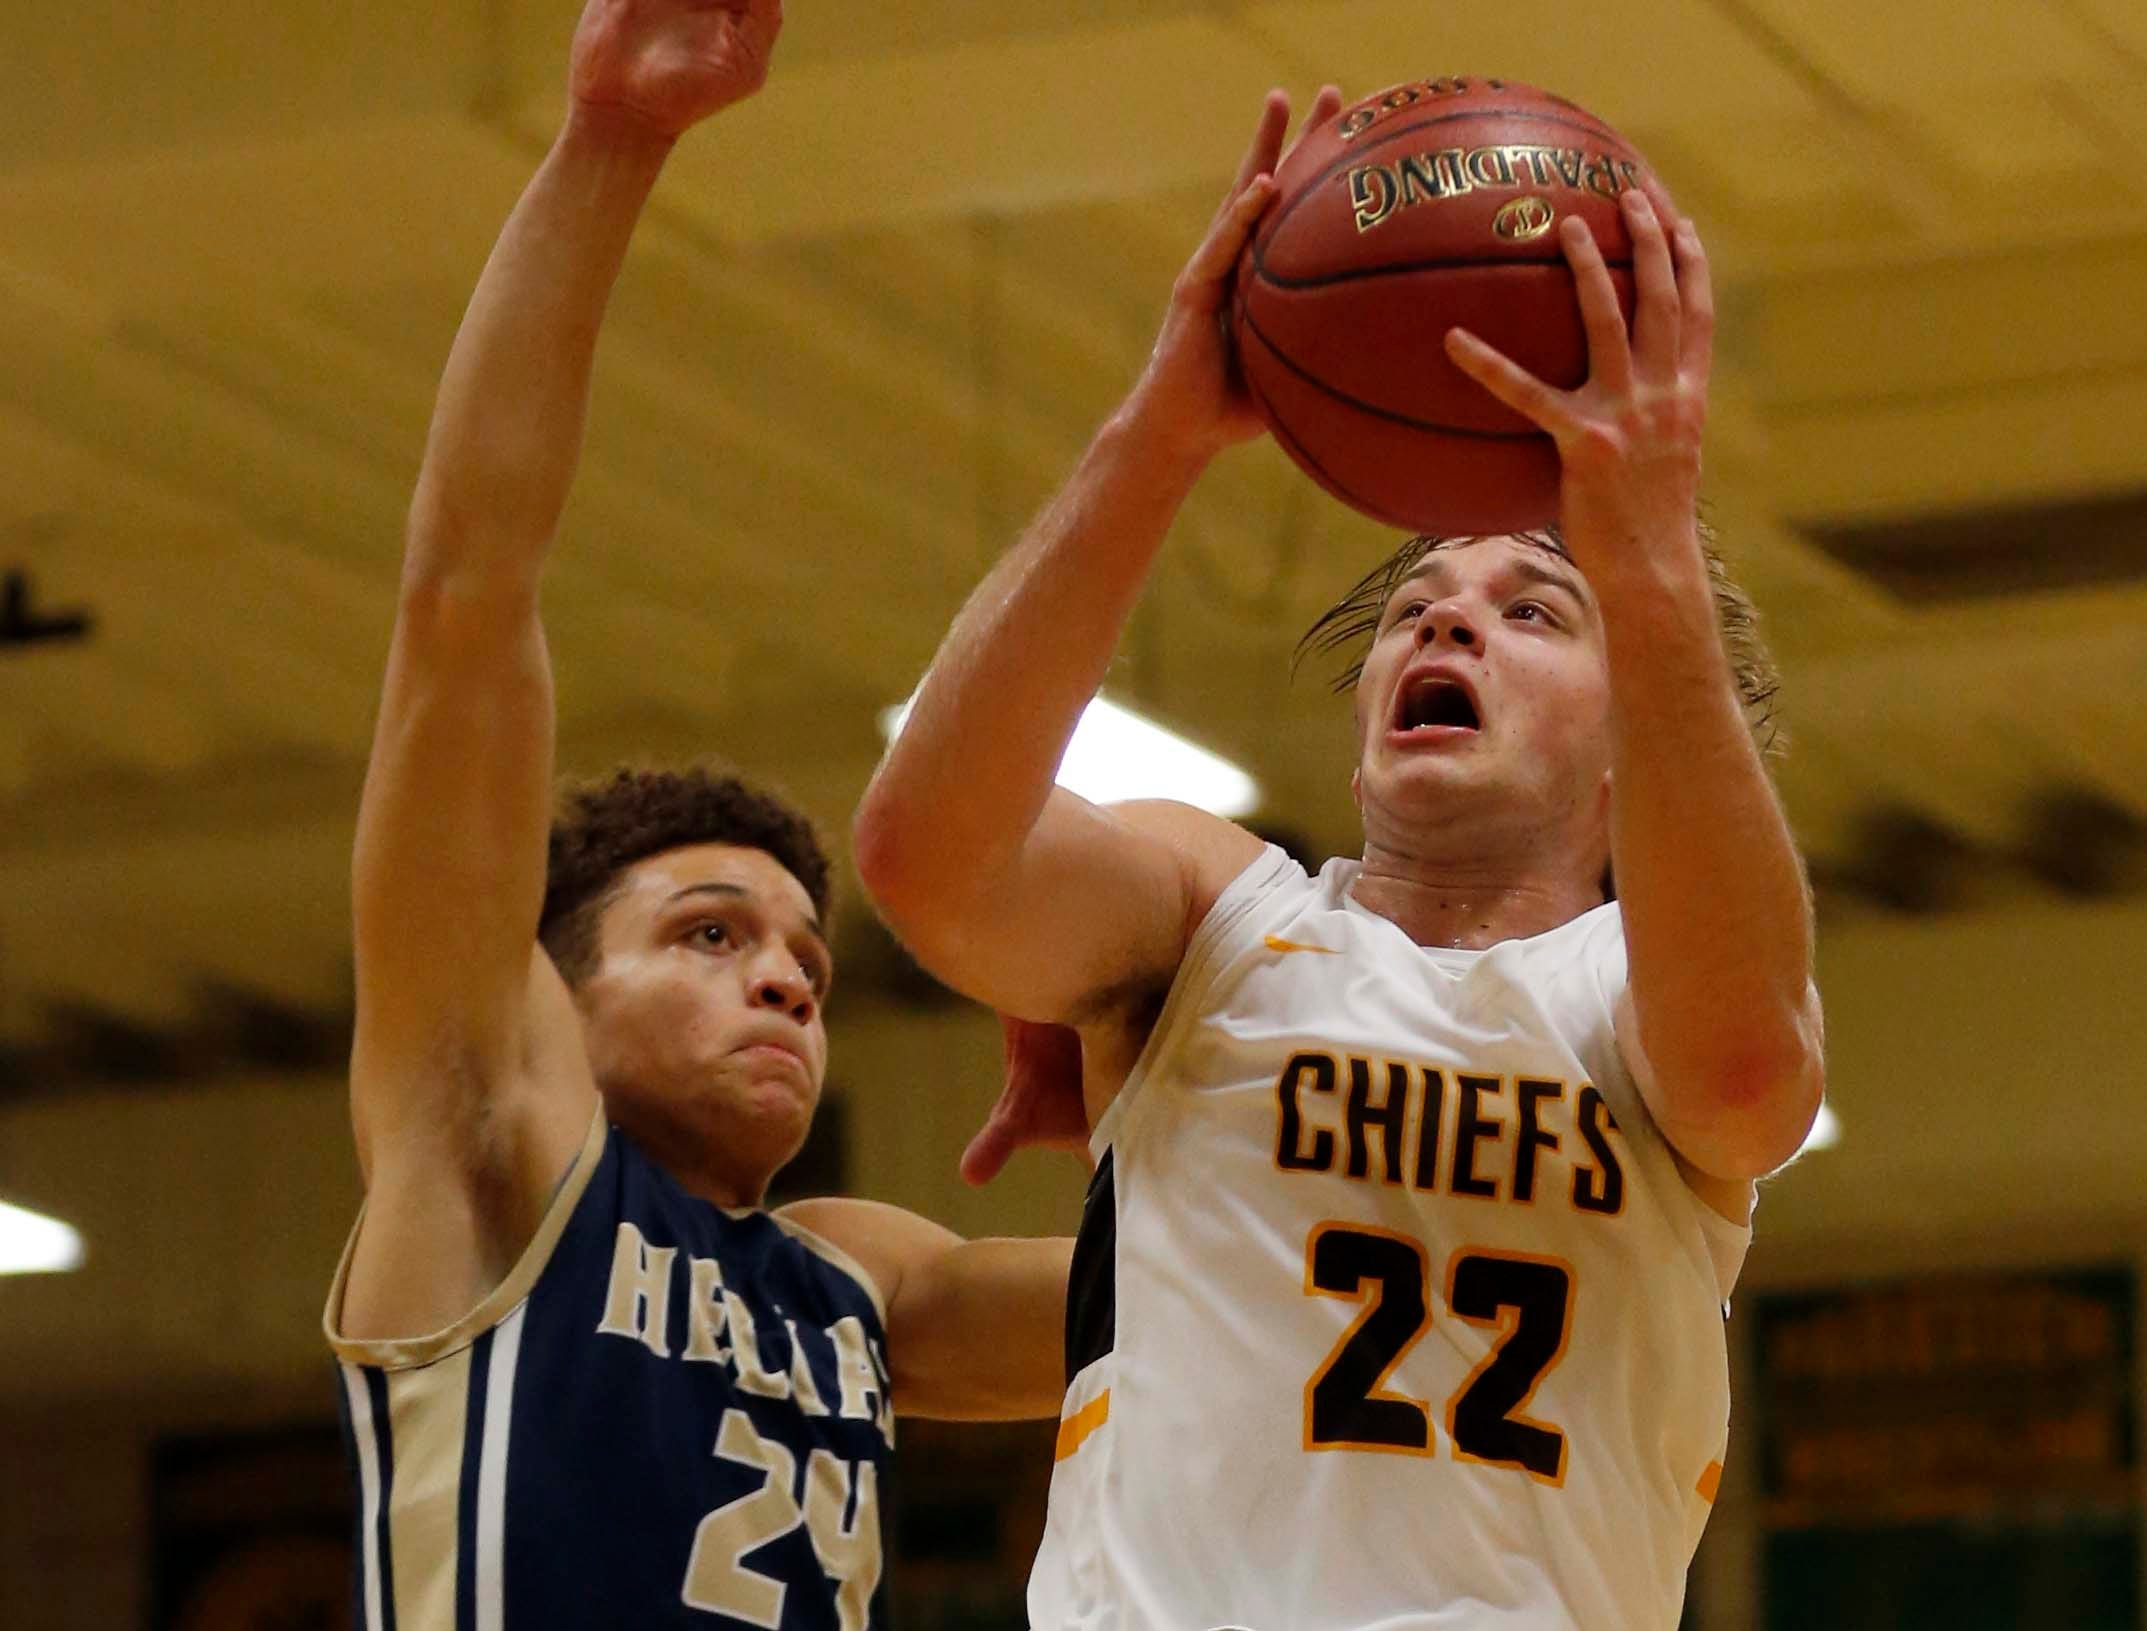 Kickapoo's Tanner Oetting looks to score against Helias in Springfield on November 29, 2018